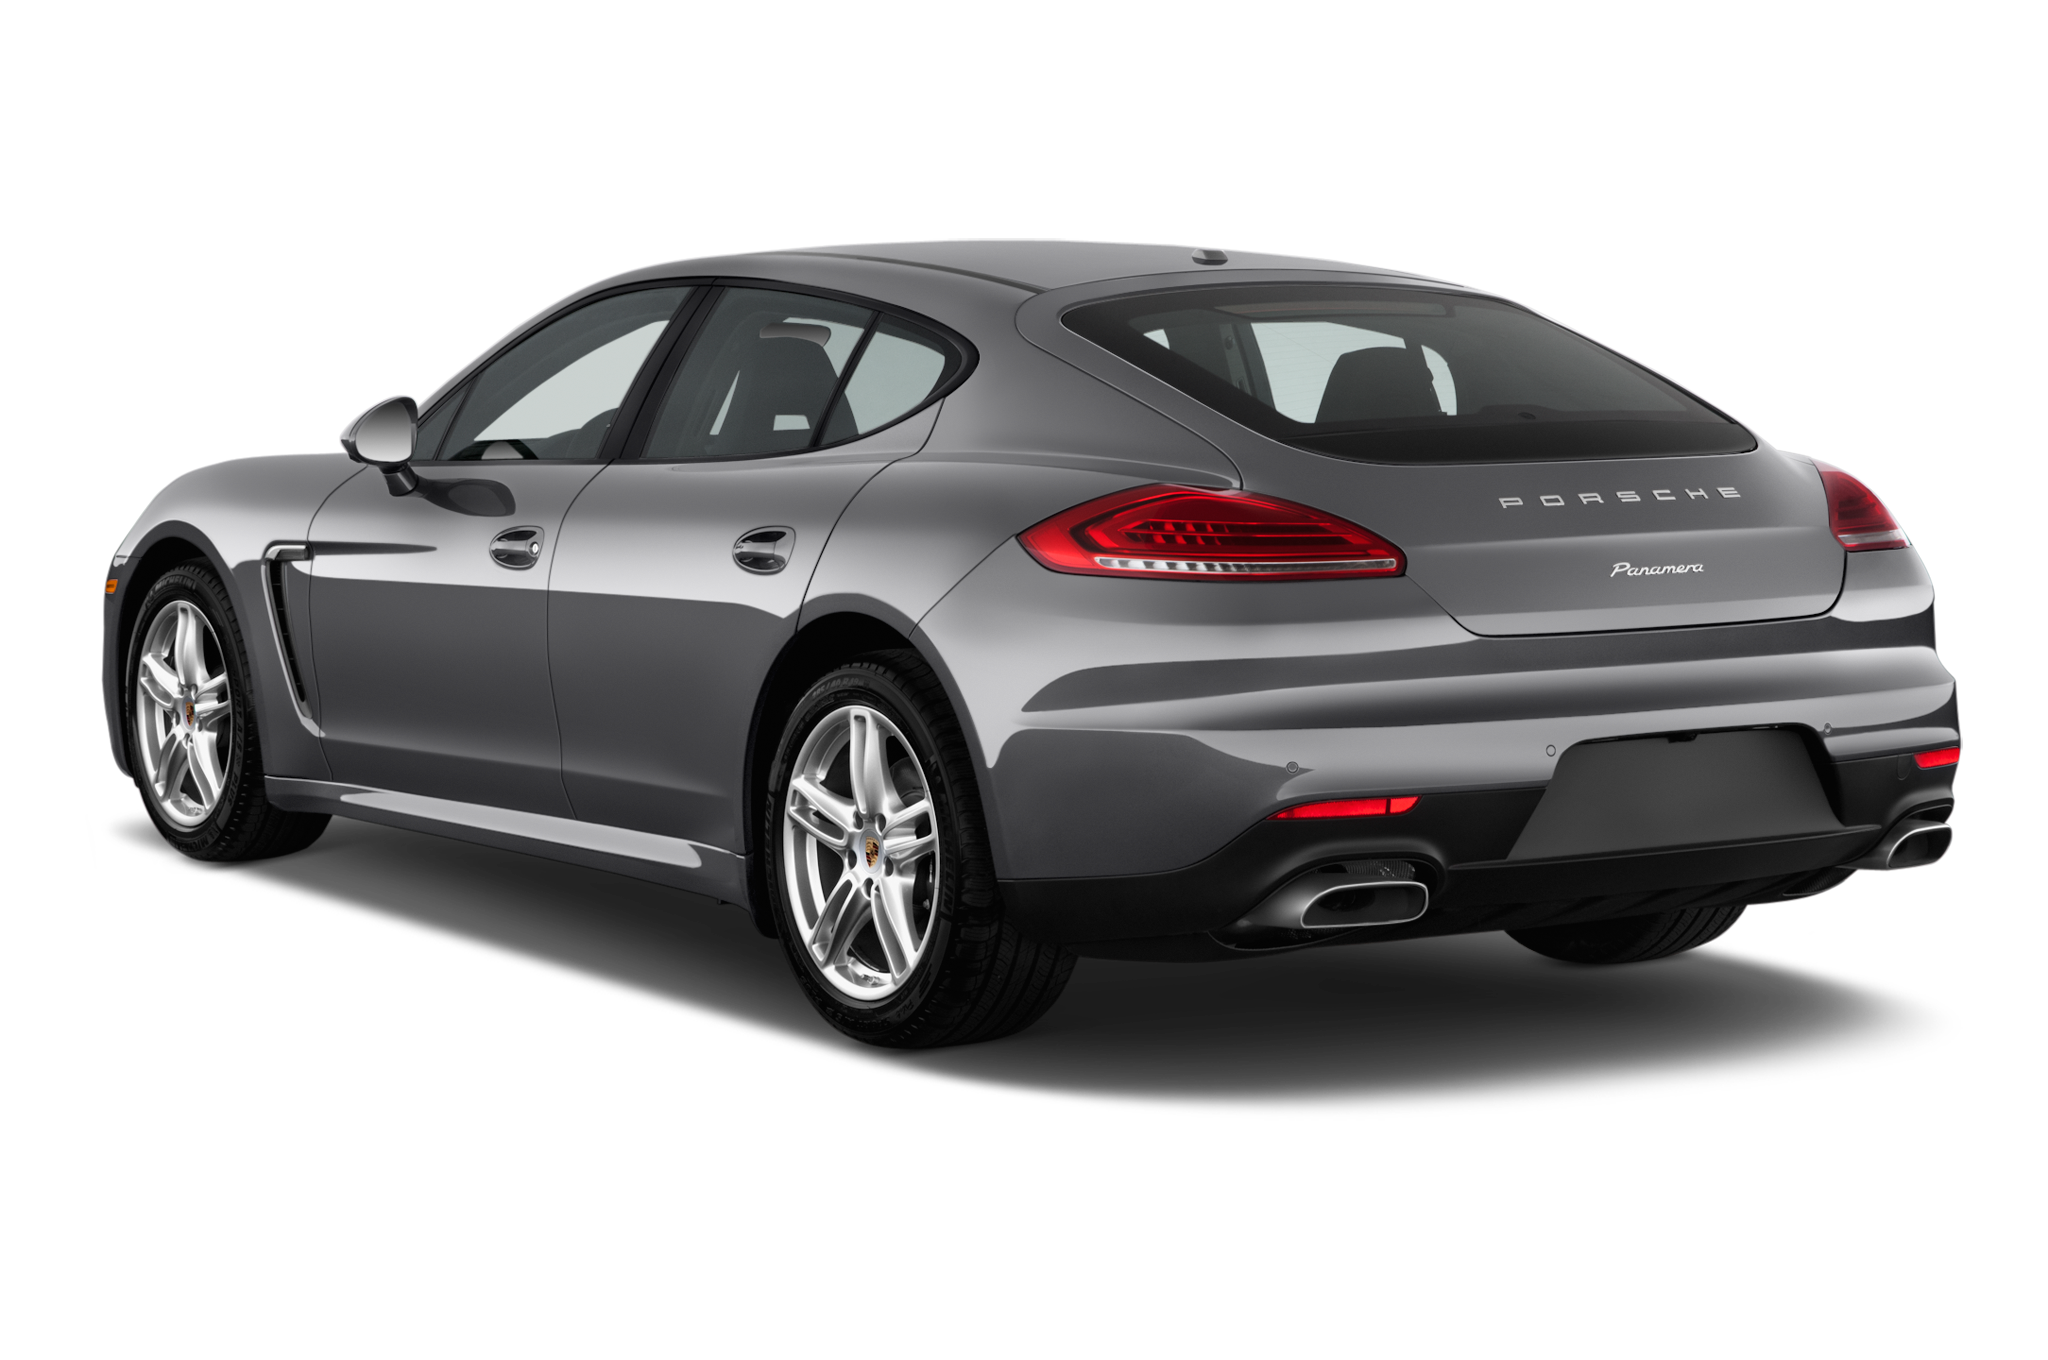 Porsche PANAMERA GTS 2014 - International Price & Overview